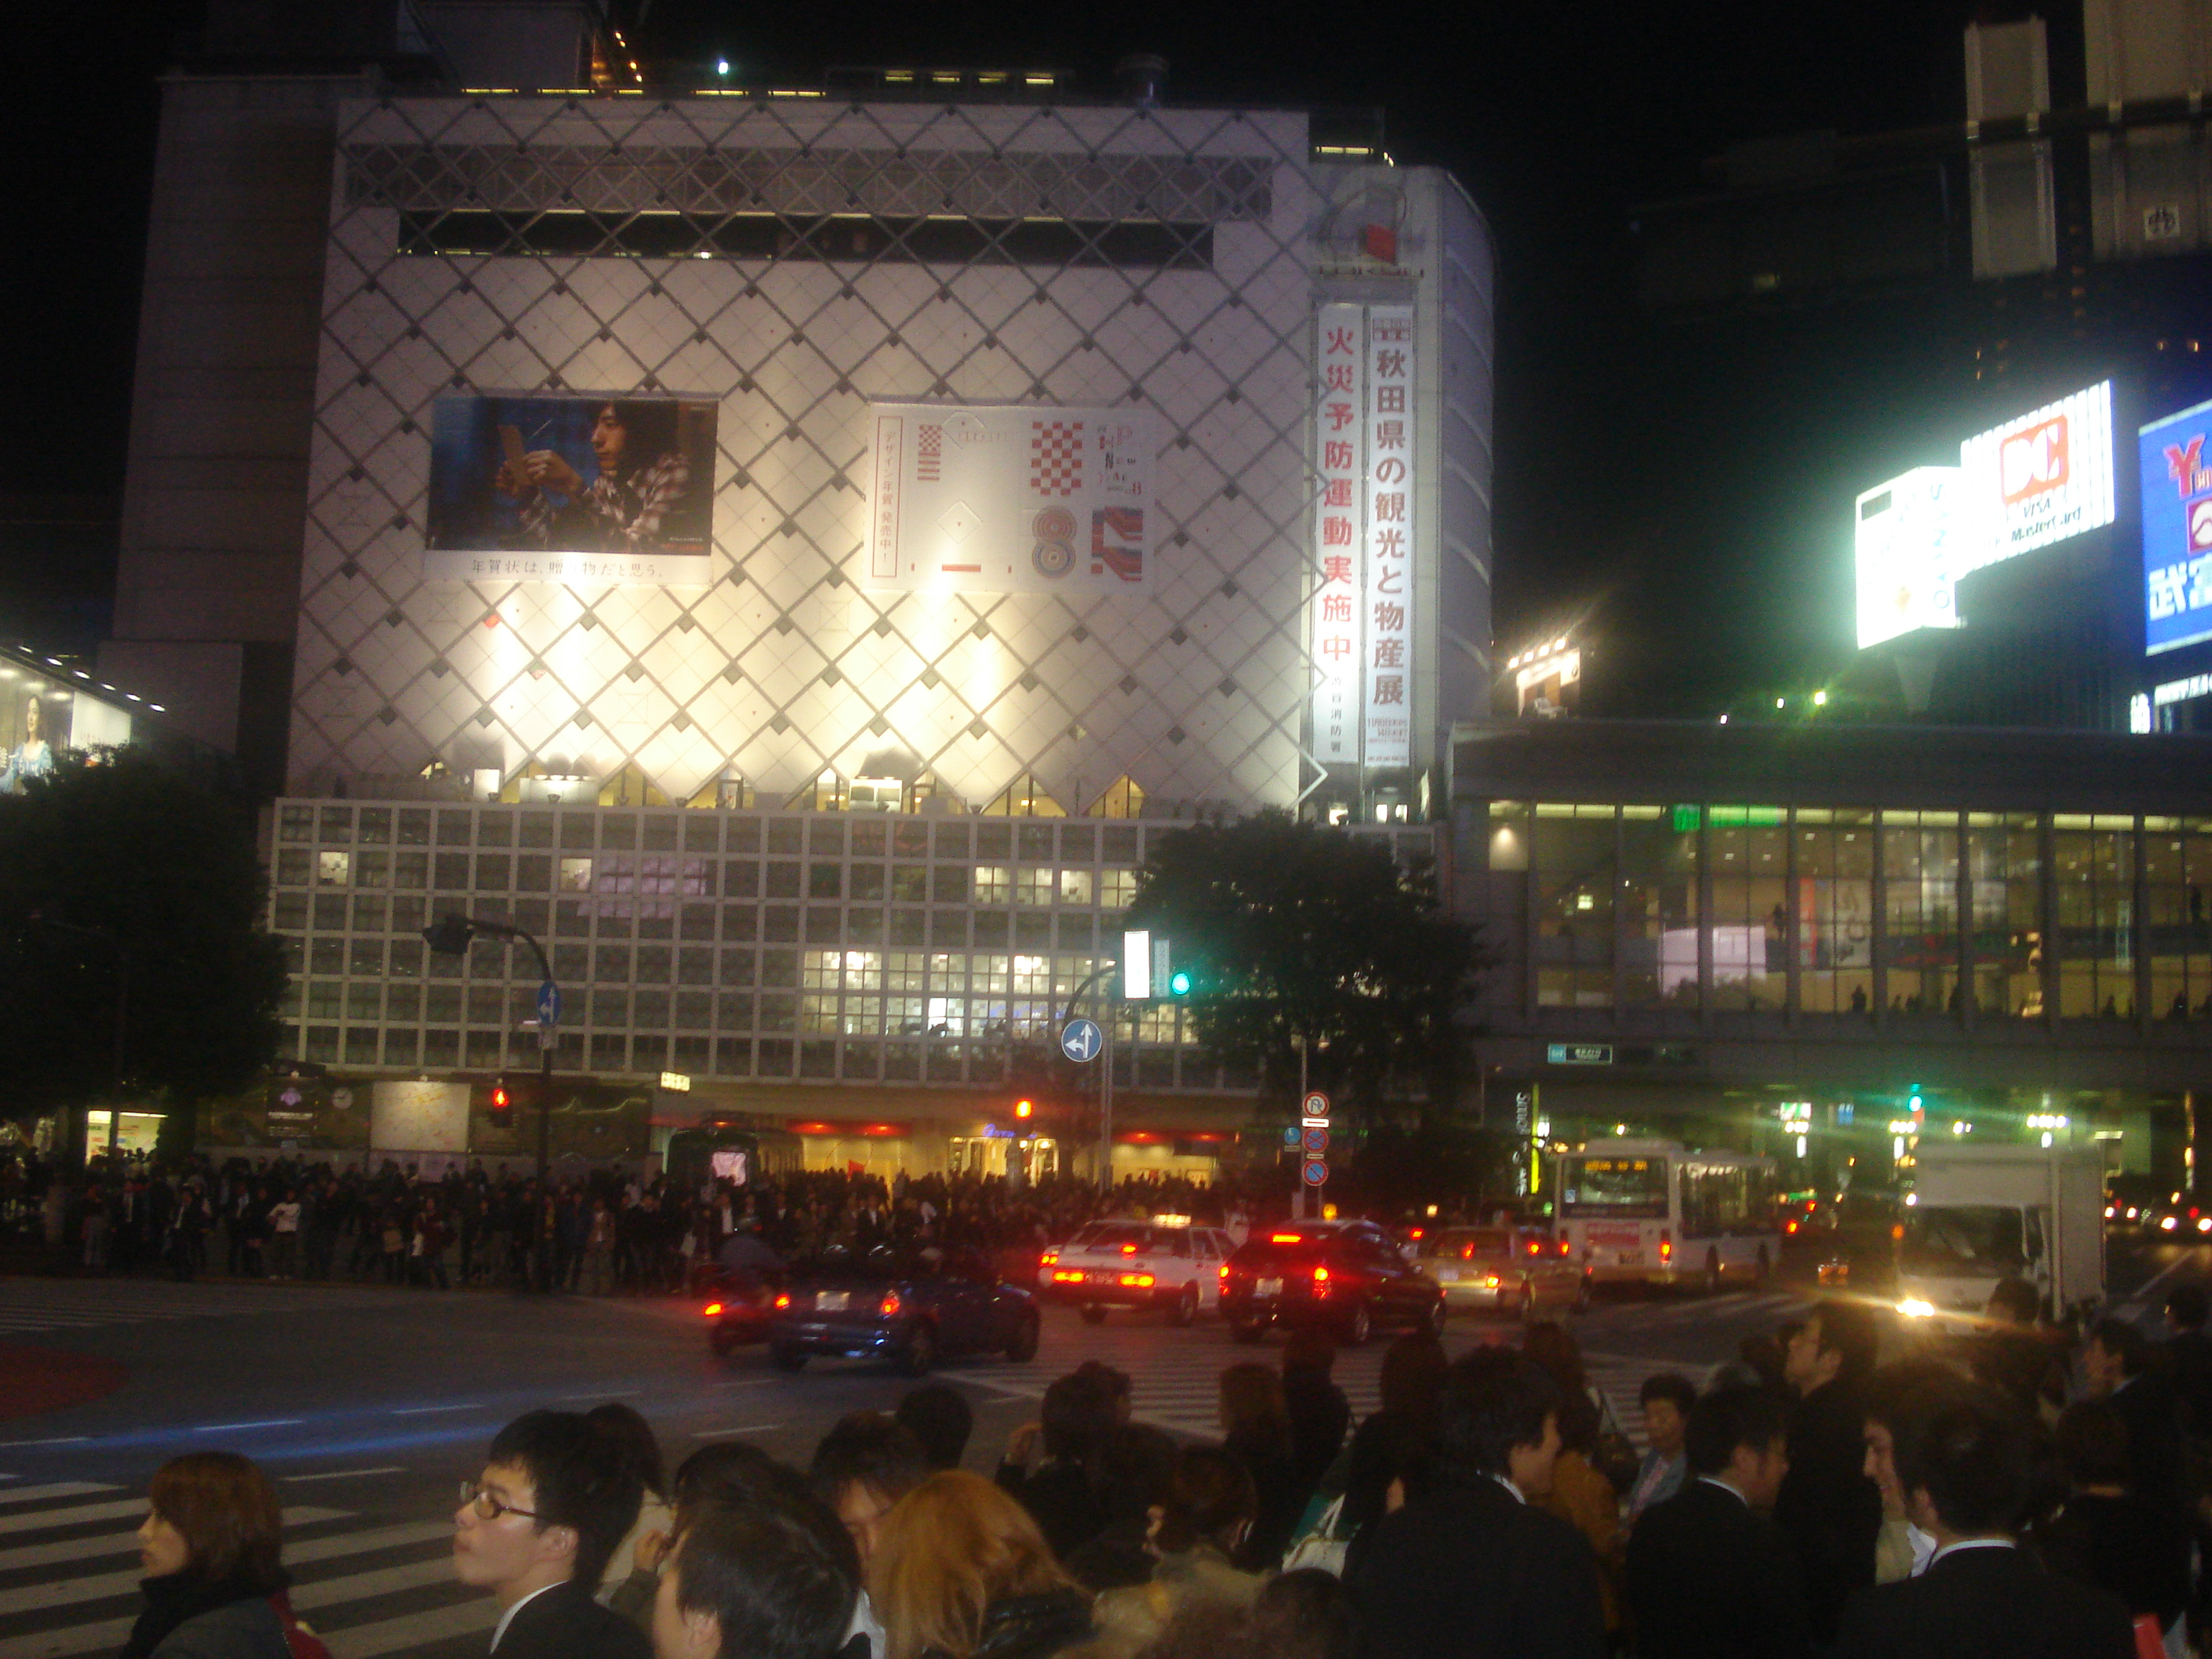 Booya for Shibuya – Could it Be Any More Awesome?